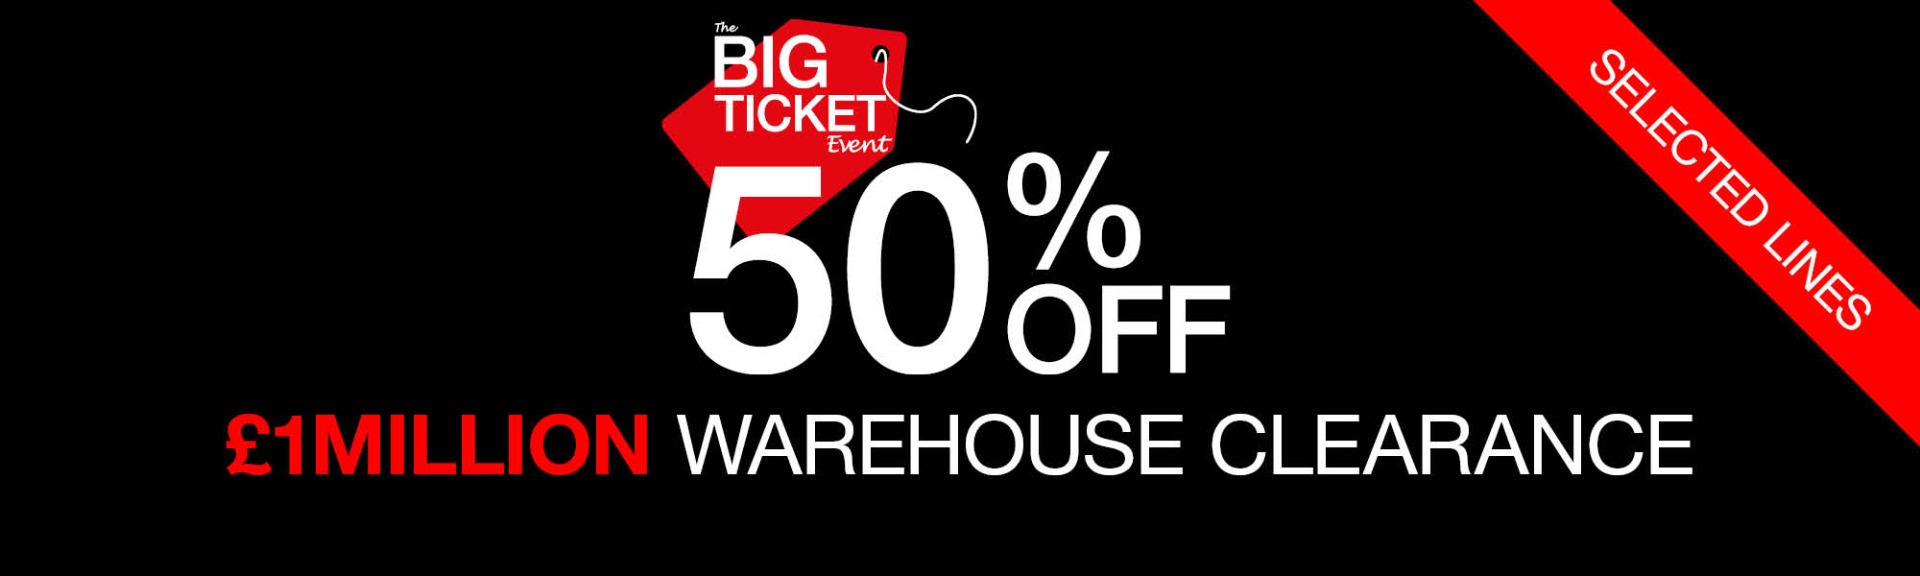 Big Ticket 50% off Selected Items. £1million warehouse clearance